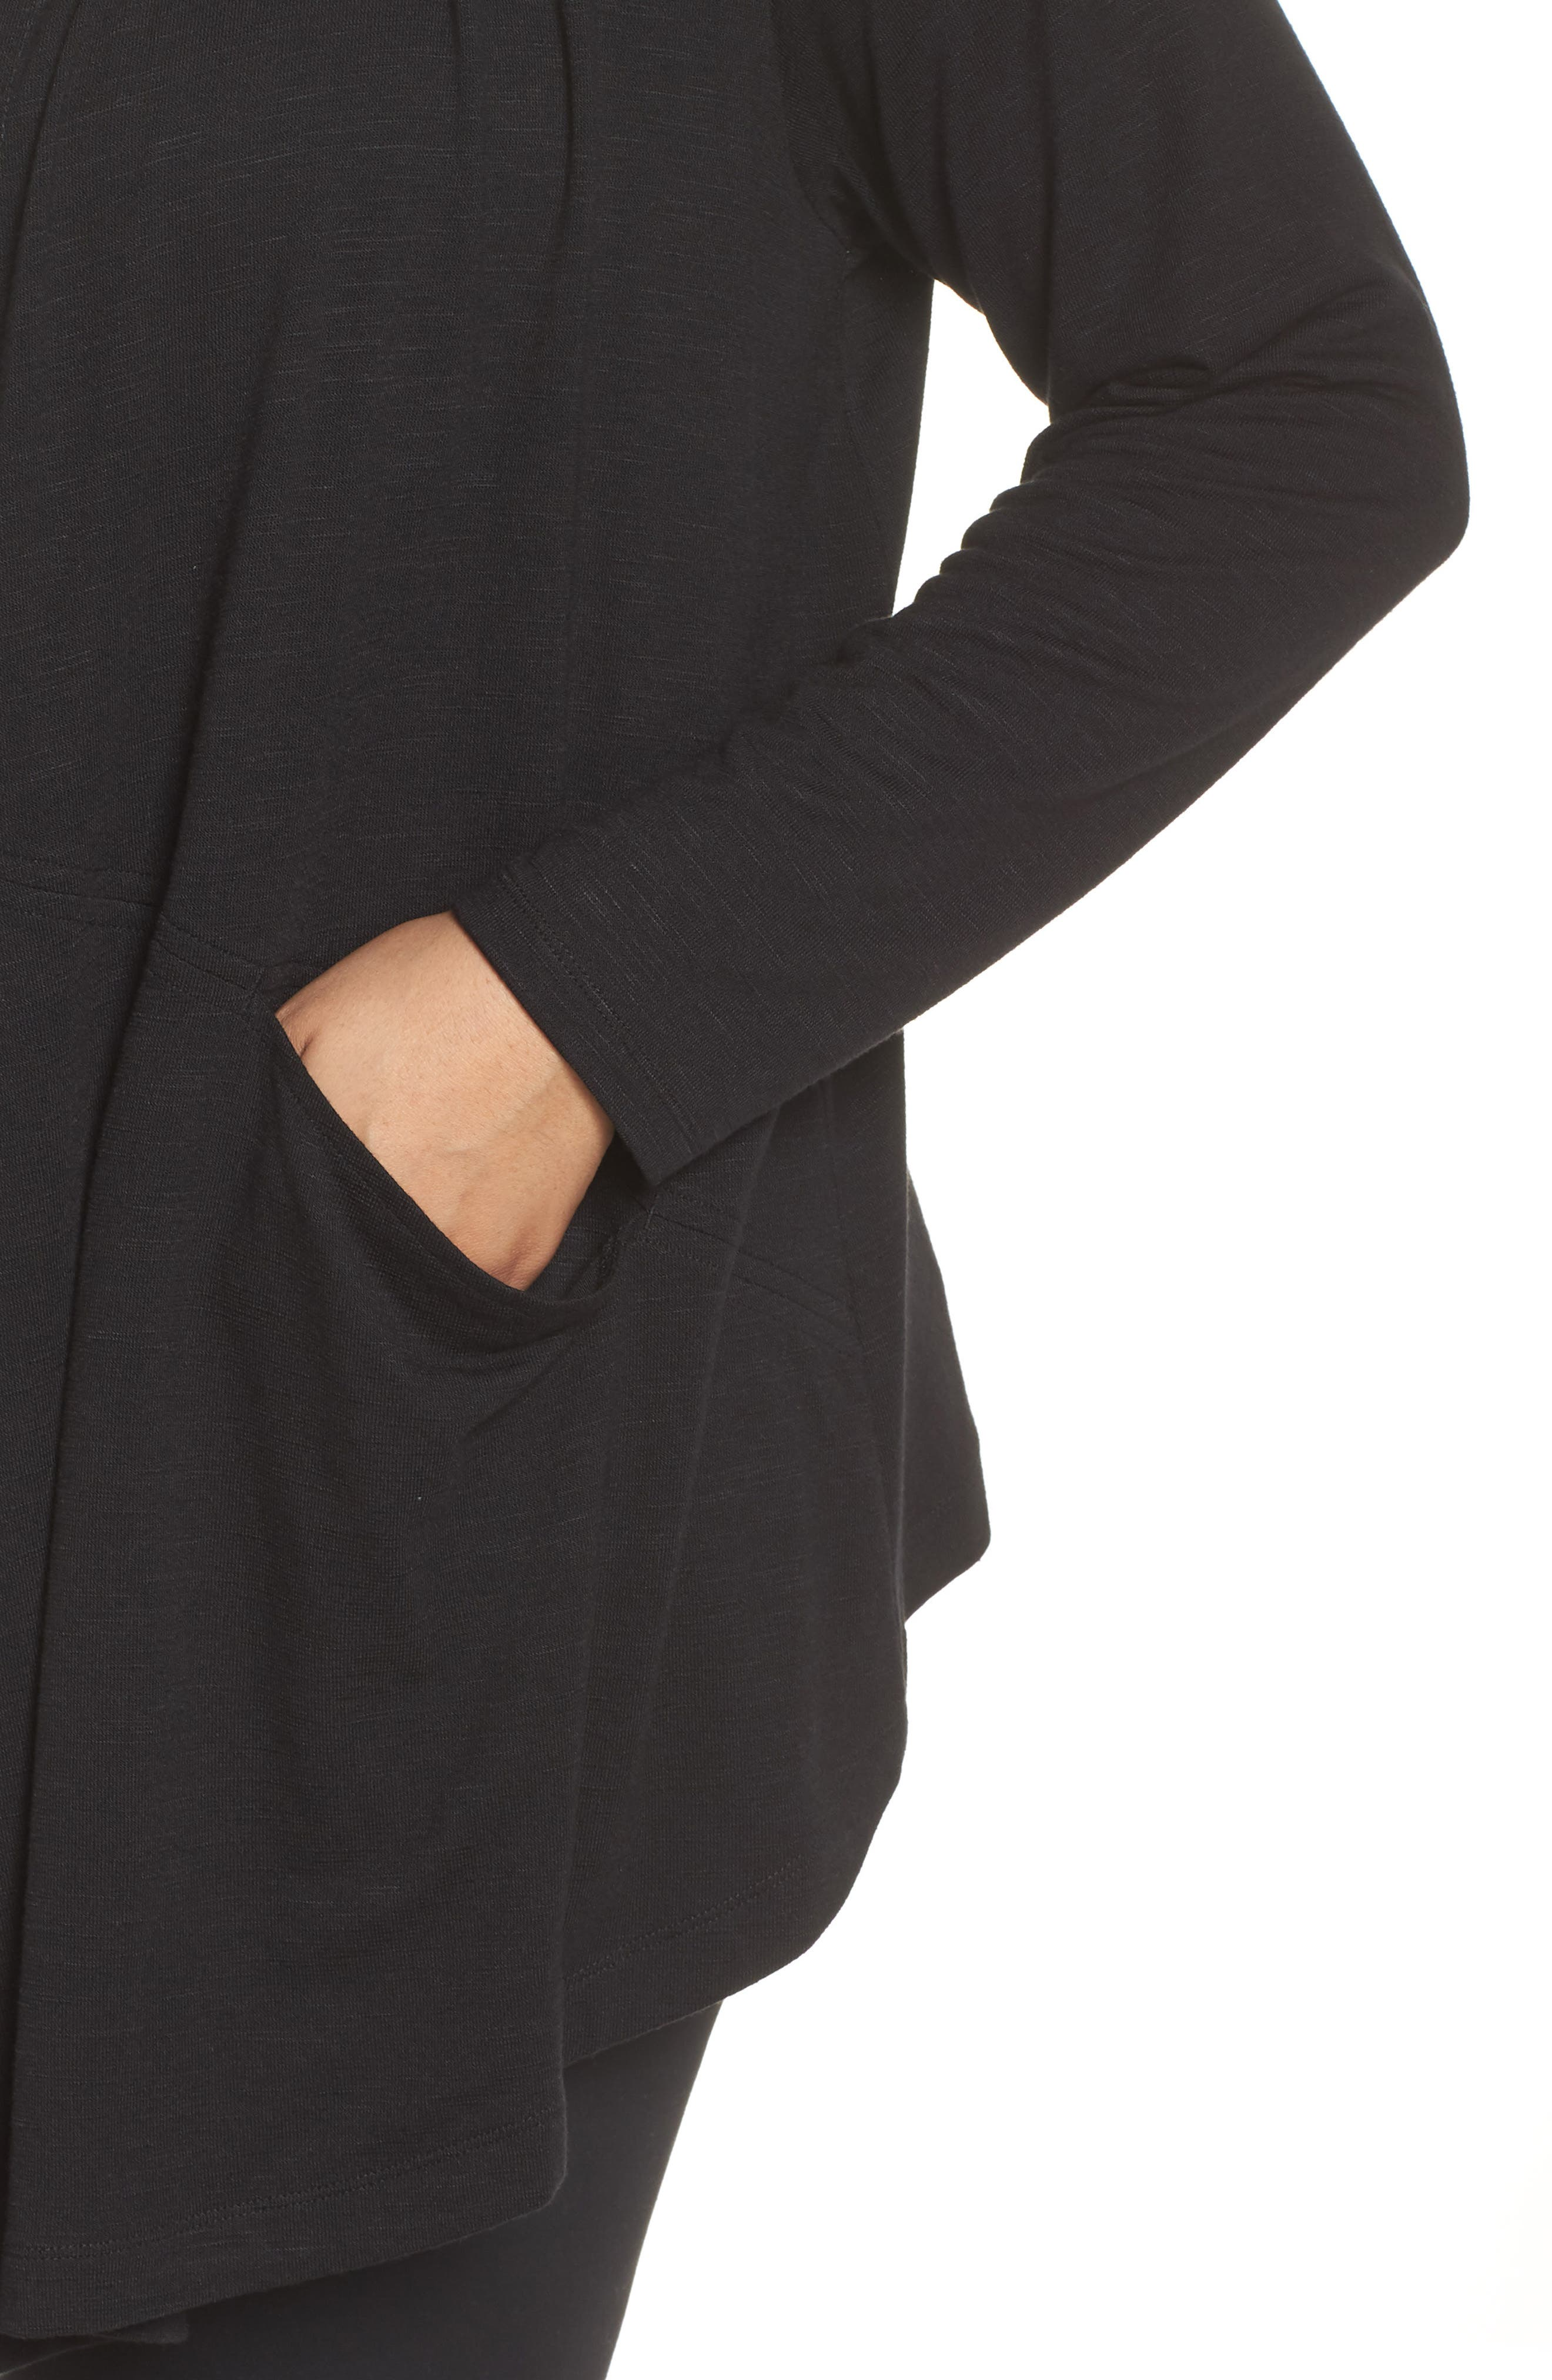 After Class Hooded Cardigan,                             Alternate thumbnail 4, color,                             BLACK